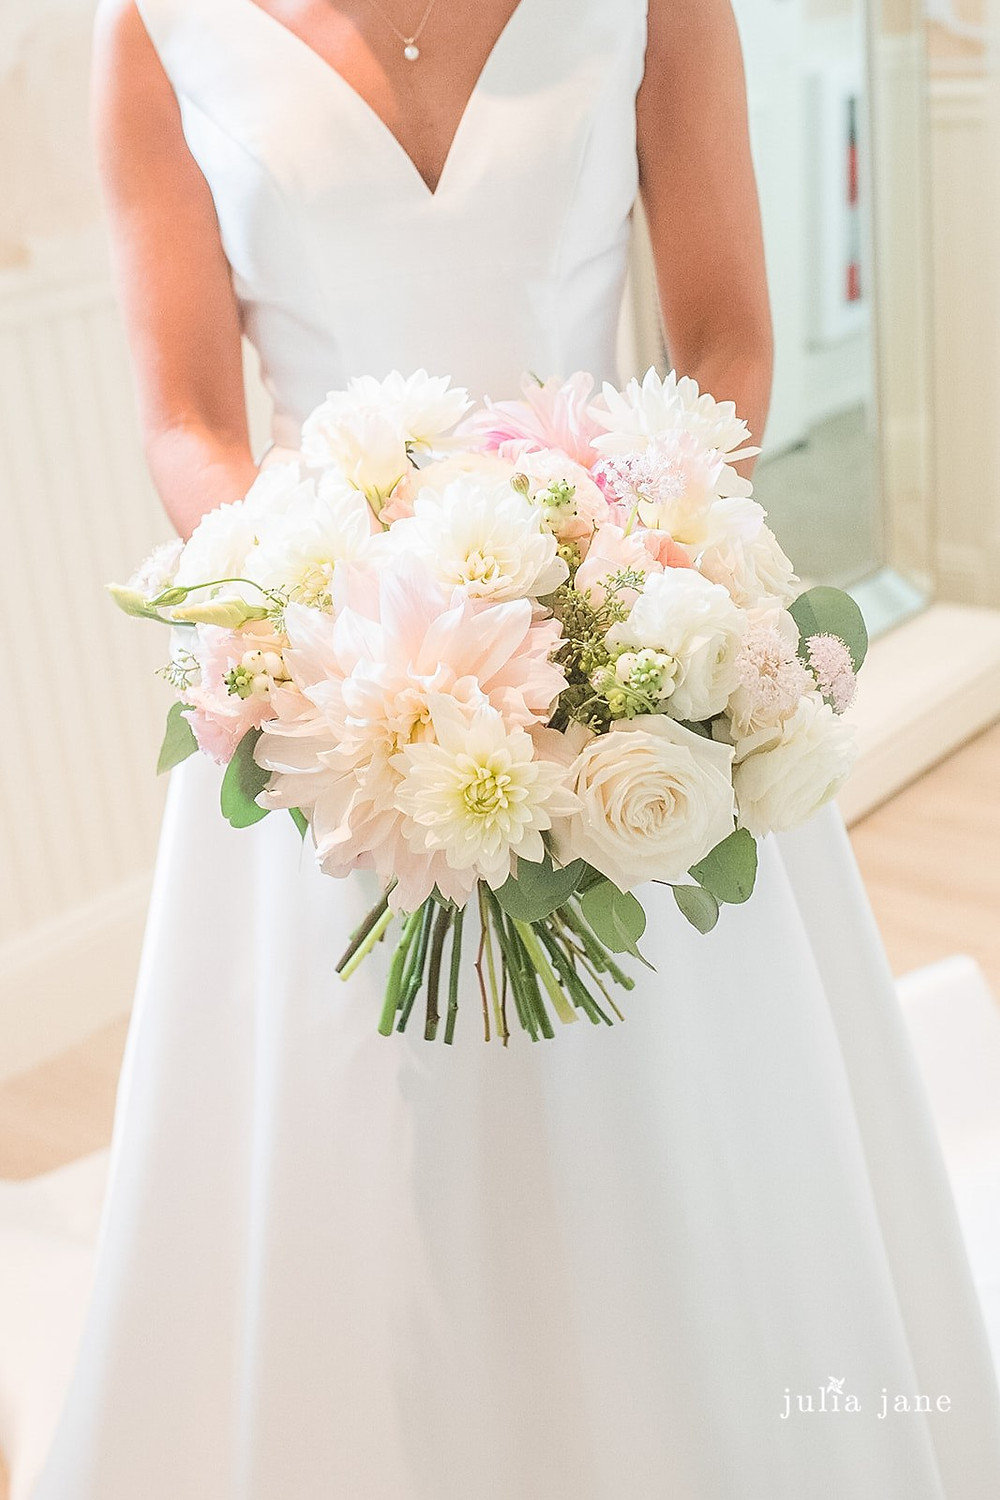 Bride's bouquet with Garden roses and Dahlias